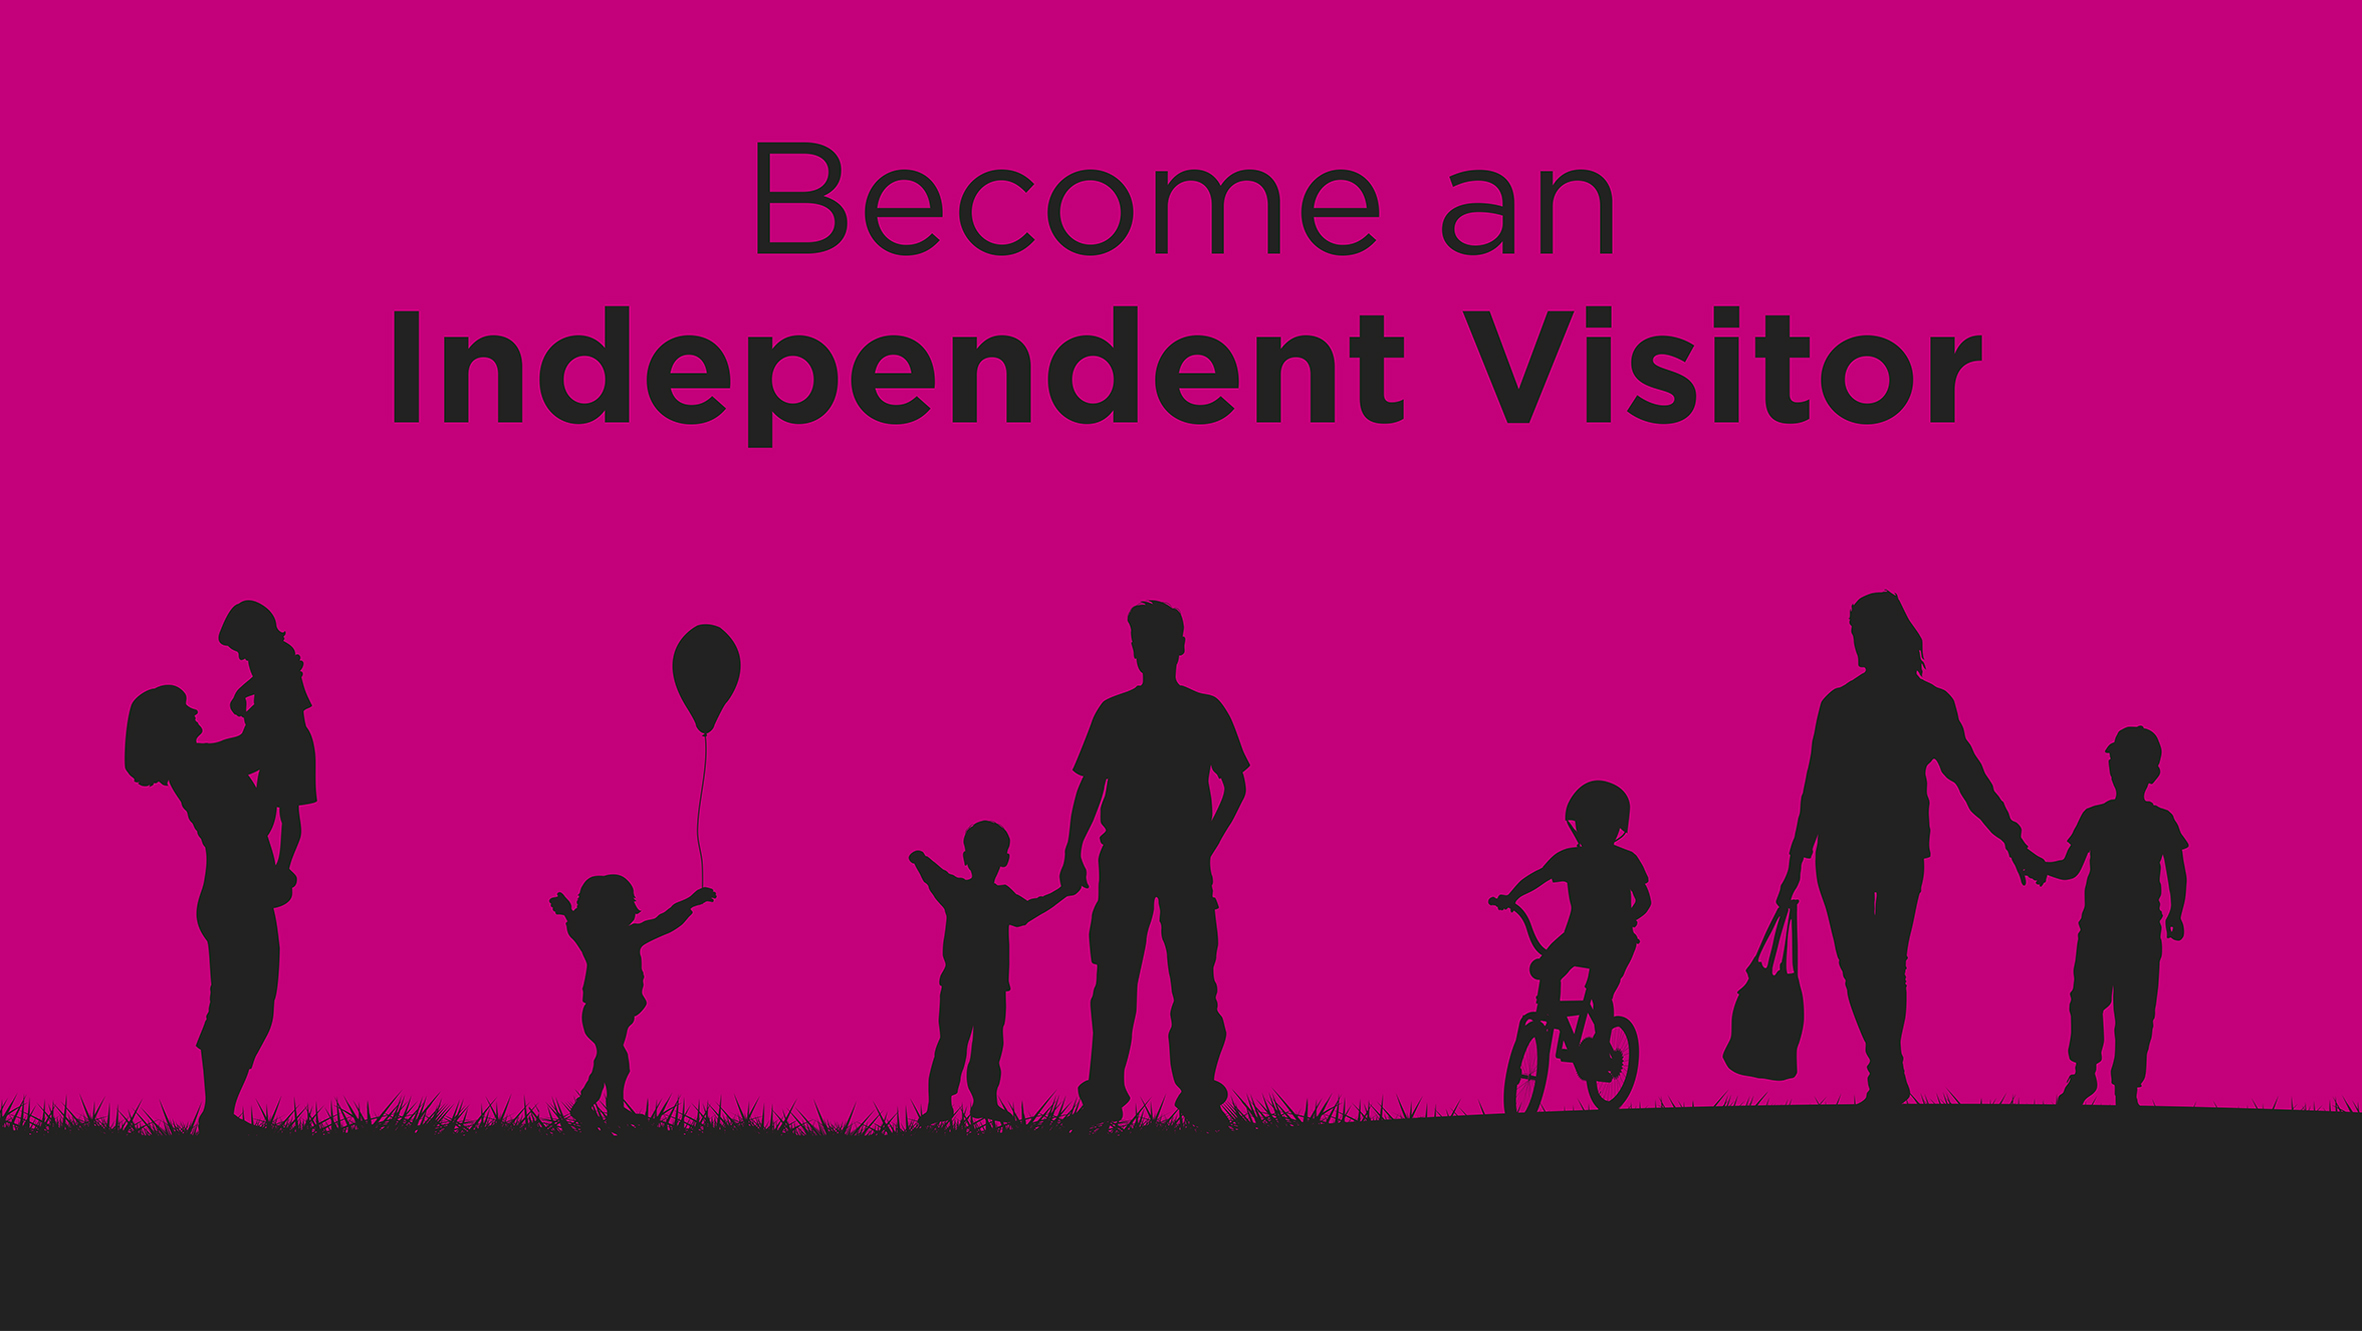 Become an independent visitor